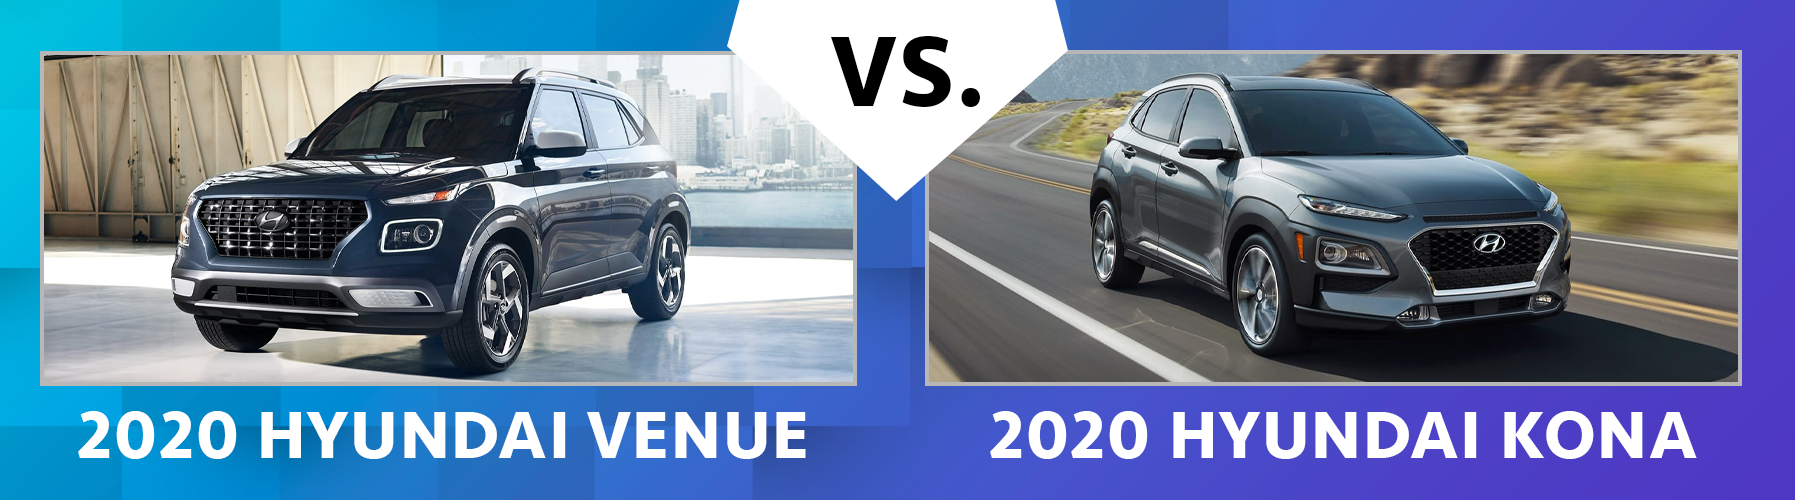 2020 Hyundai Venue vs 2020 Hyundai Kona Chicago IL